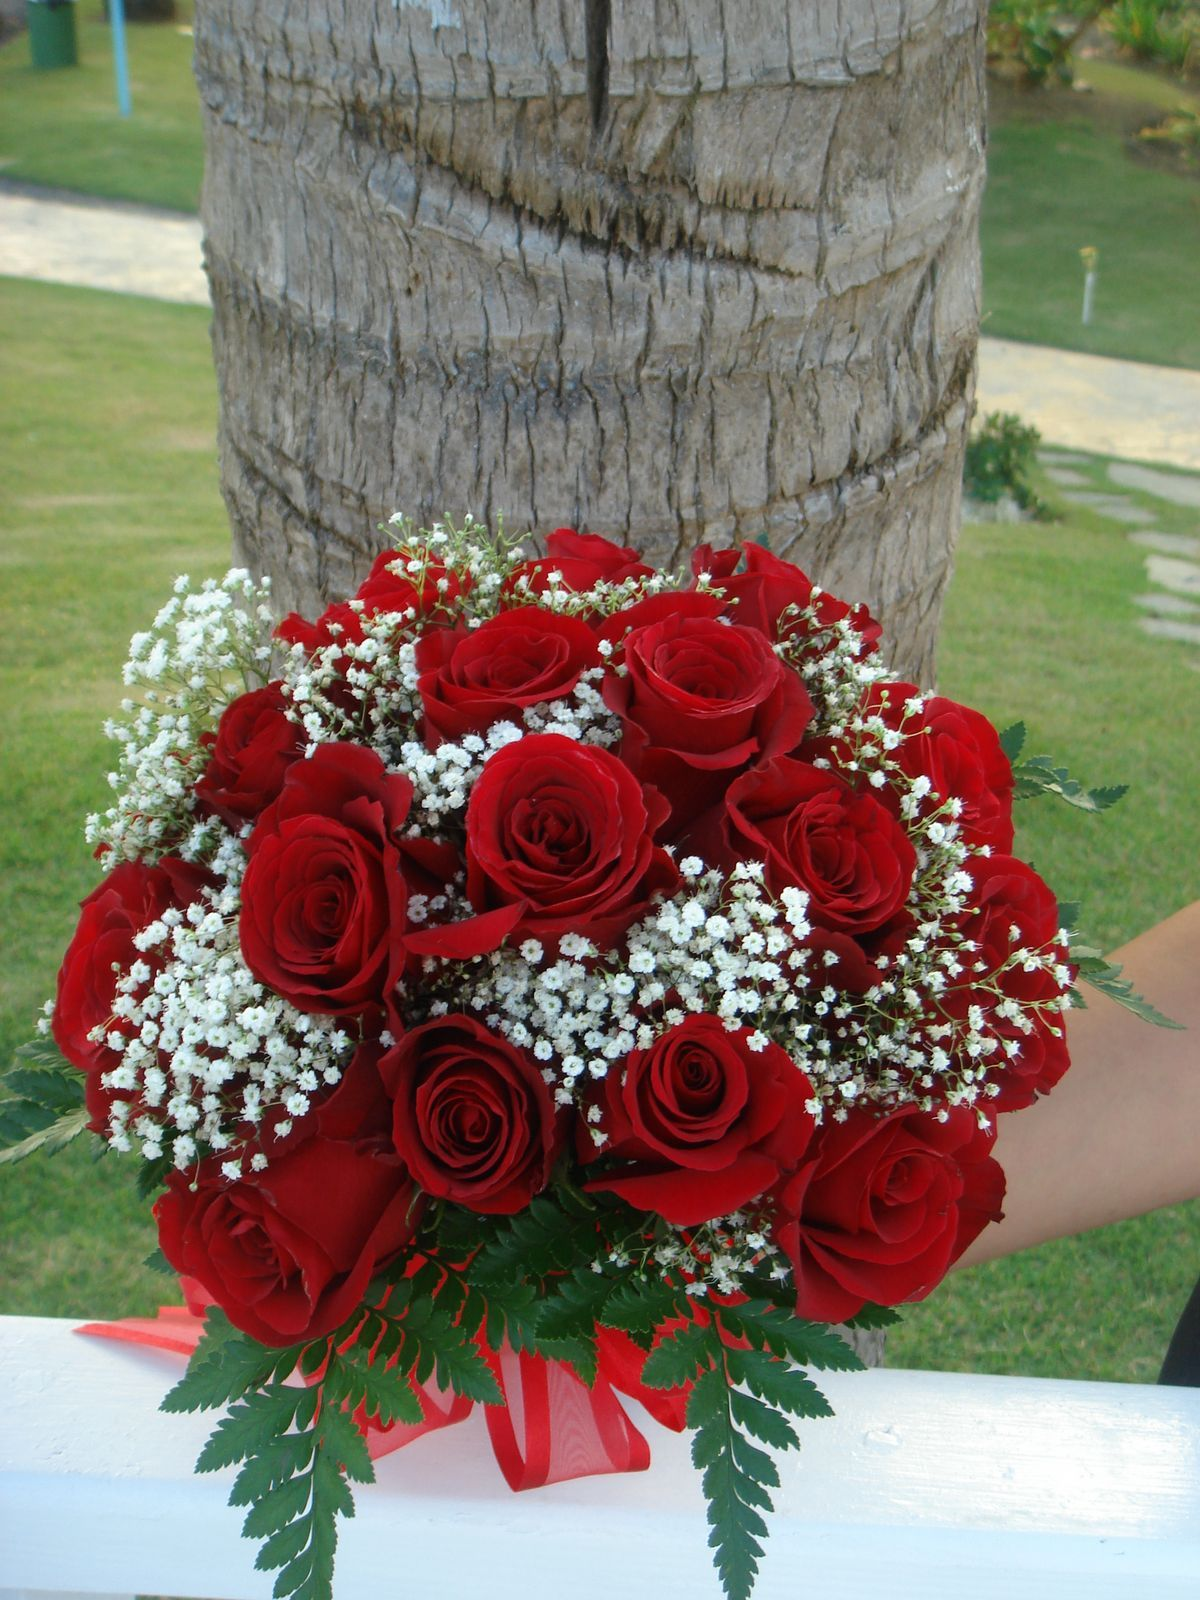 Bouquet Bridal: Red Roses and Small White Flowers Bouquet ...